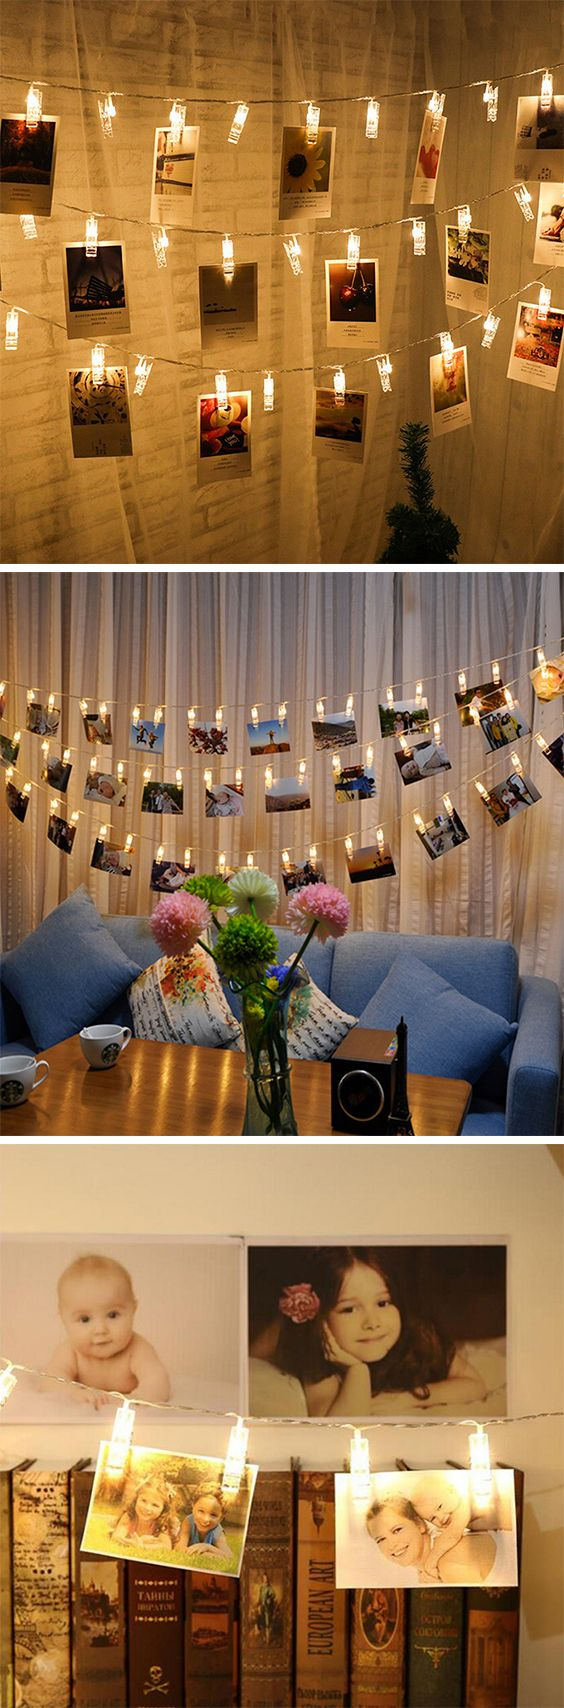 Free Shipping Worldwide!Automatically color changing mode. Press the touch button to last color, then press it again, auto color changing mode works. It can be put in bedroom, child room, living room, bar, shop, cafe, restaurant etc as decorative light